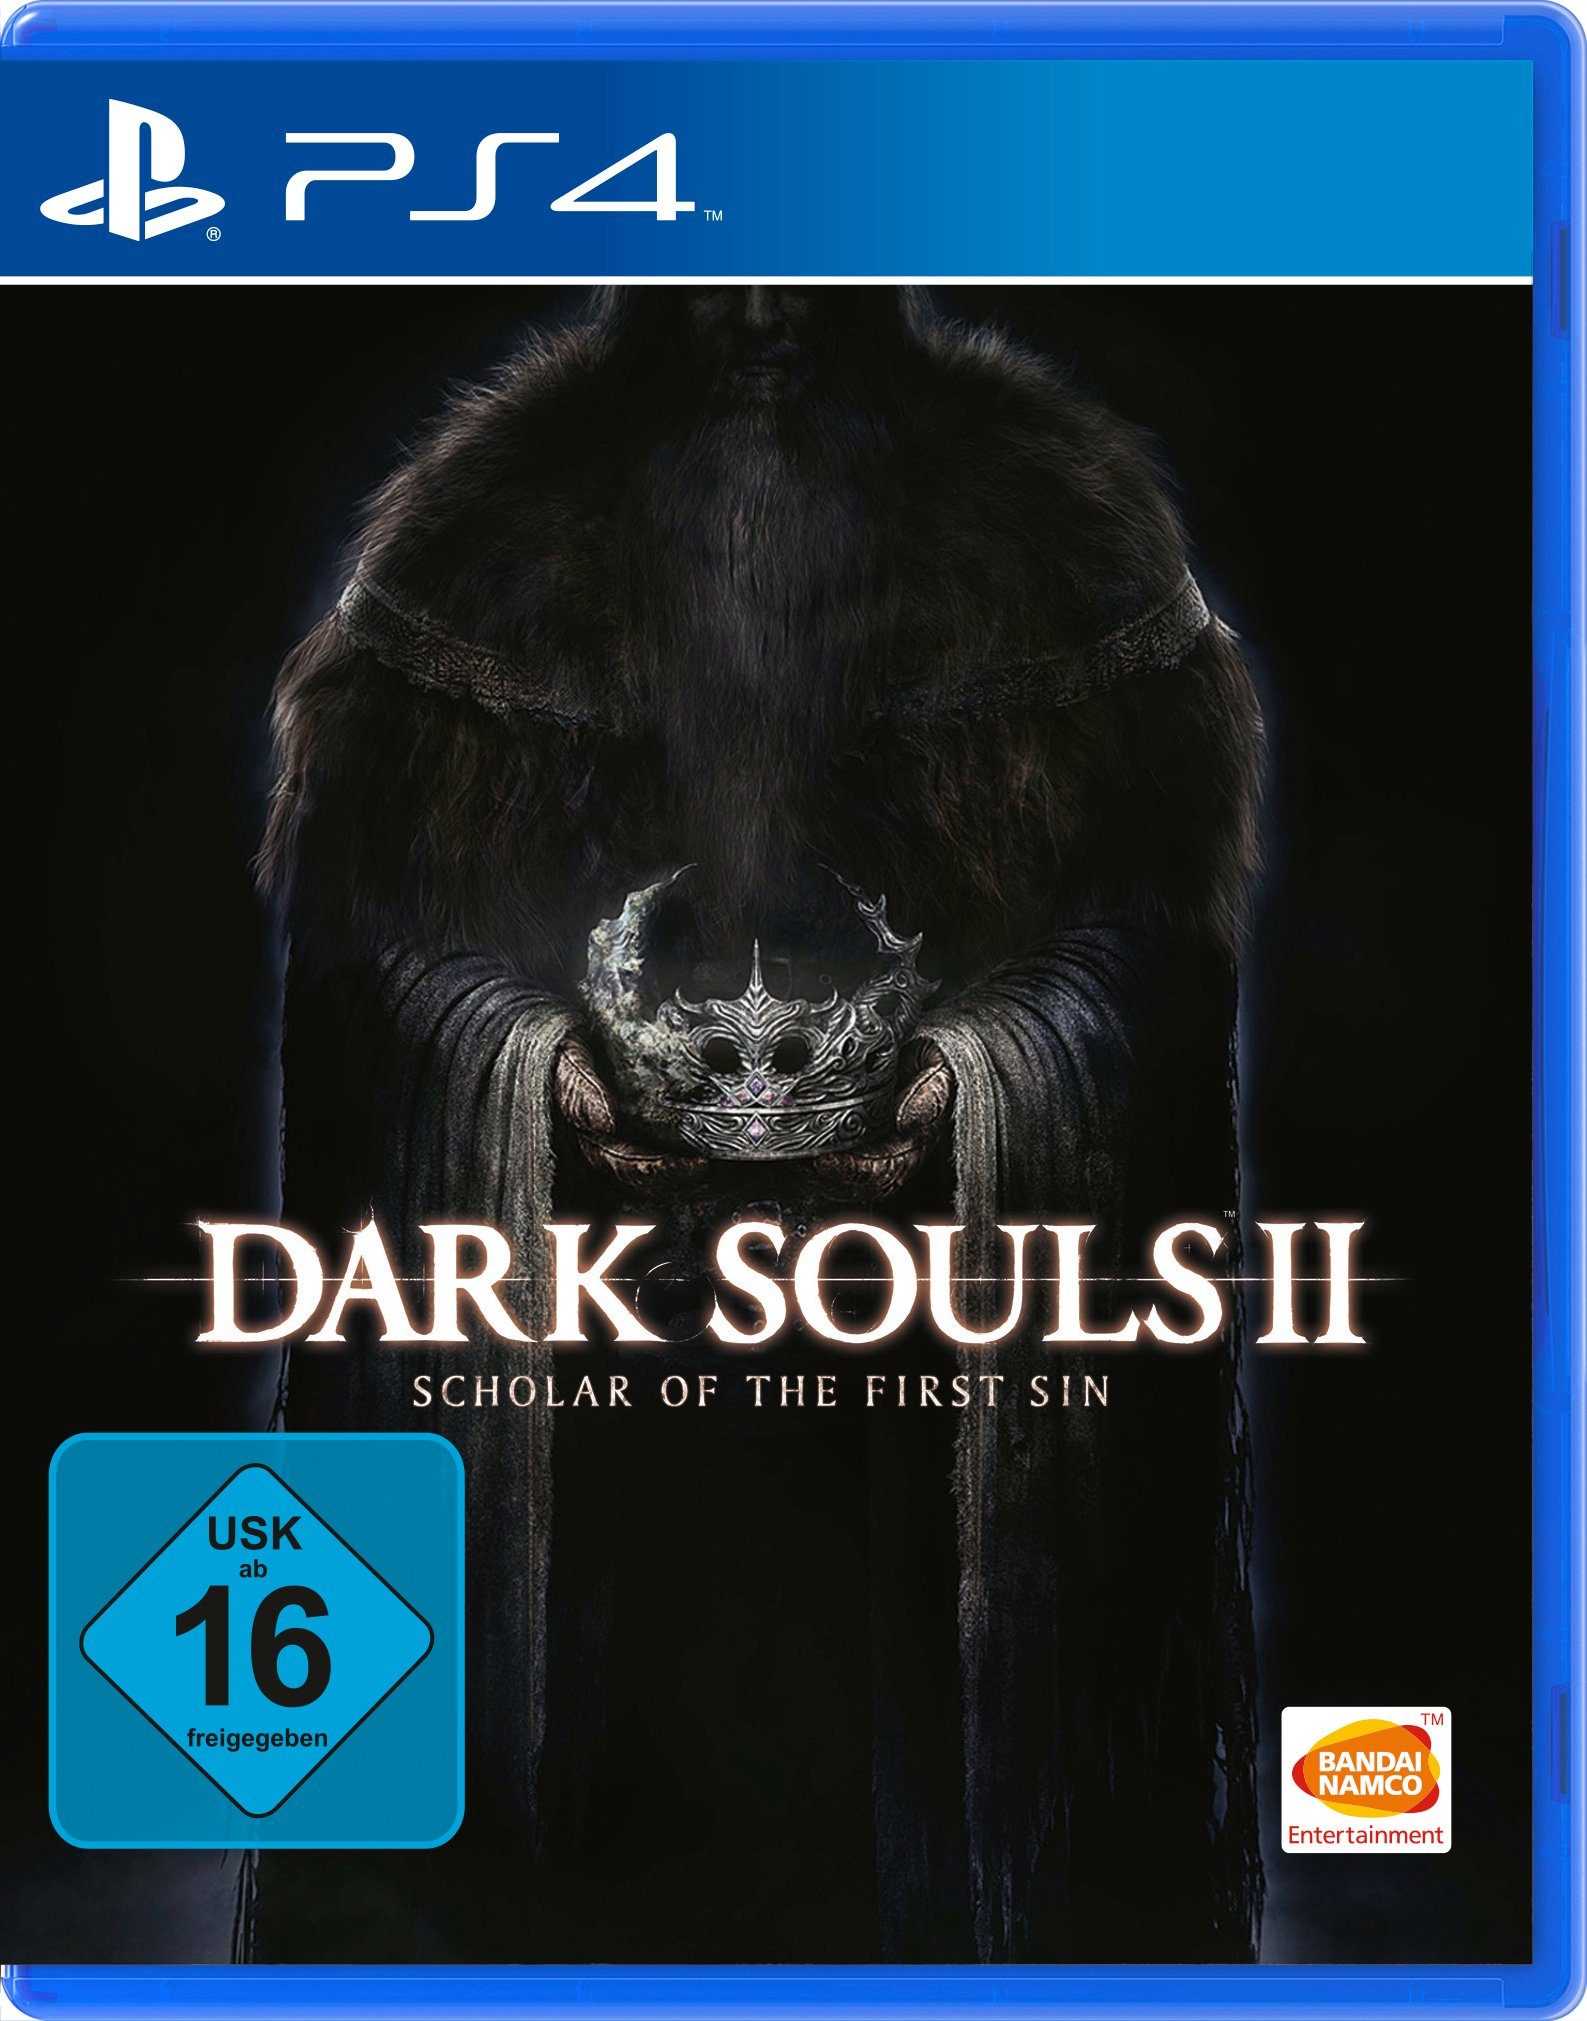 BANDAI NAMCO Software Pyramide - Playstation 4 Spiel »Dark Souls II - Scholar of the First Sin«